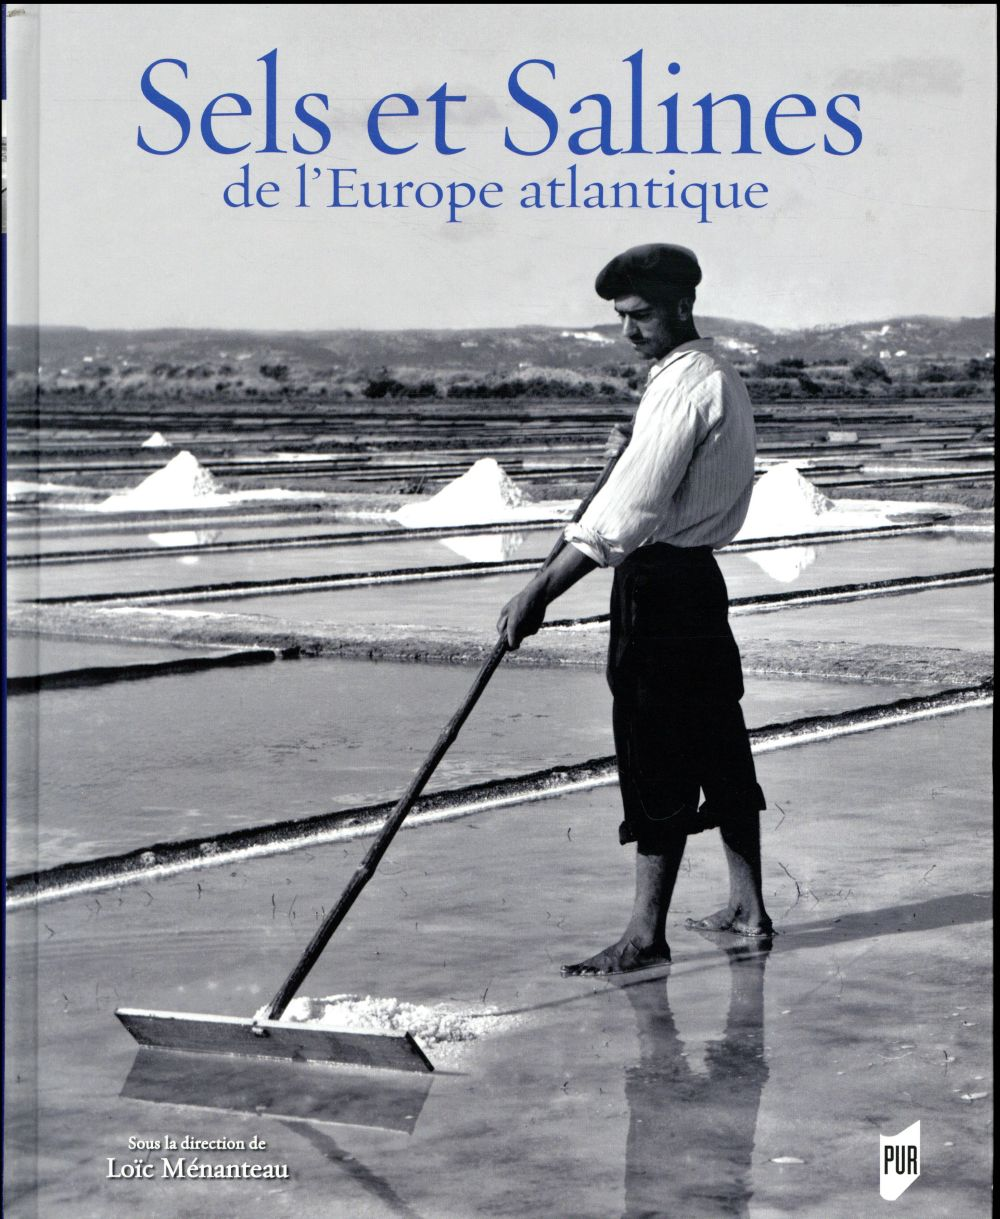 SELS ET SALINES DE L EUROPE ATLANTIQUE